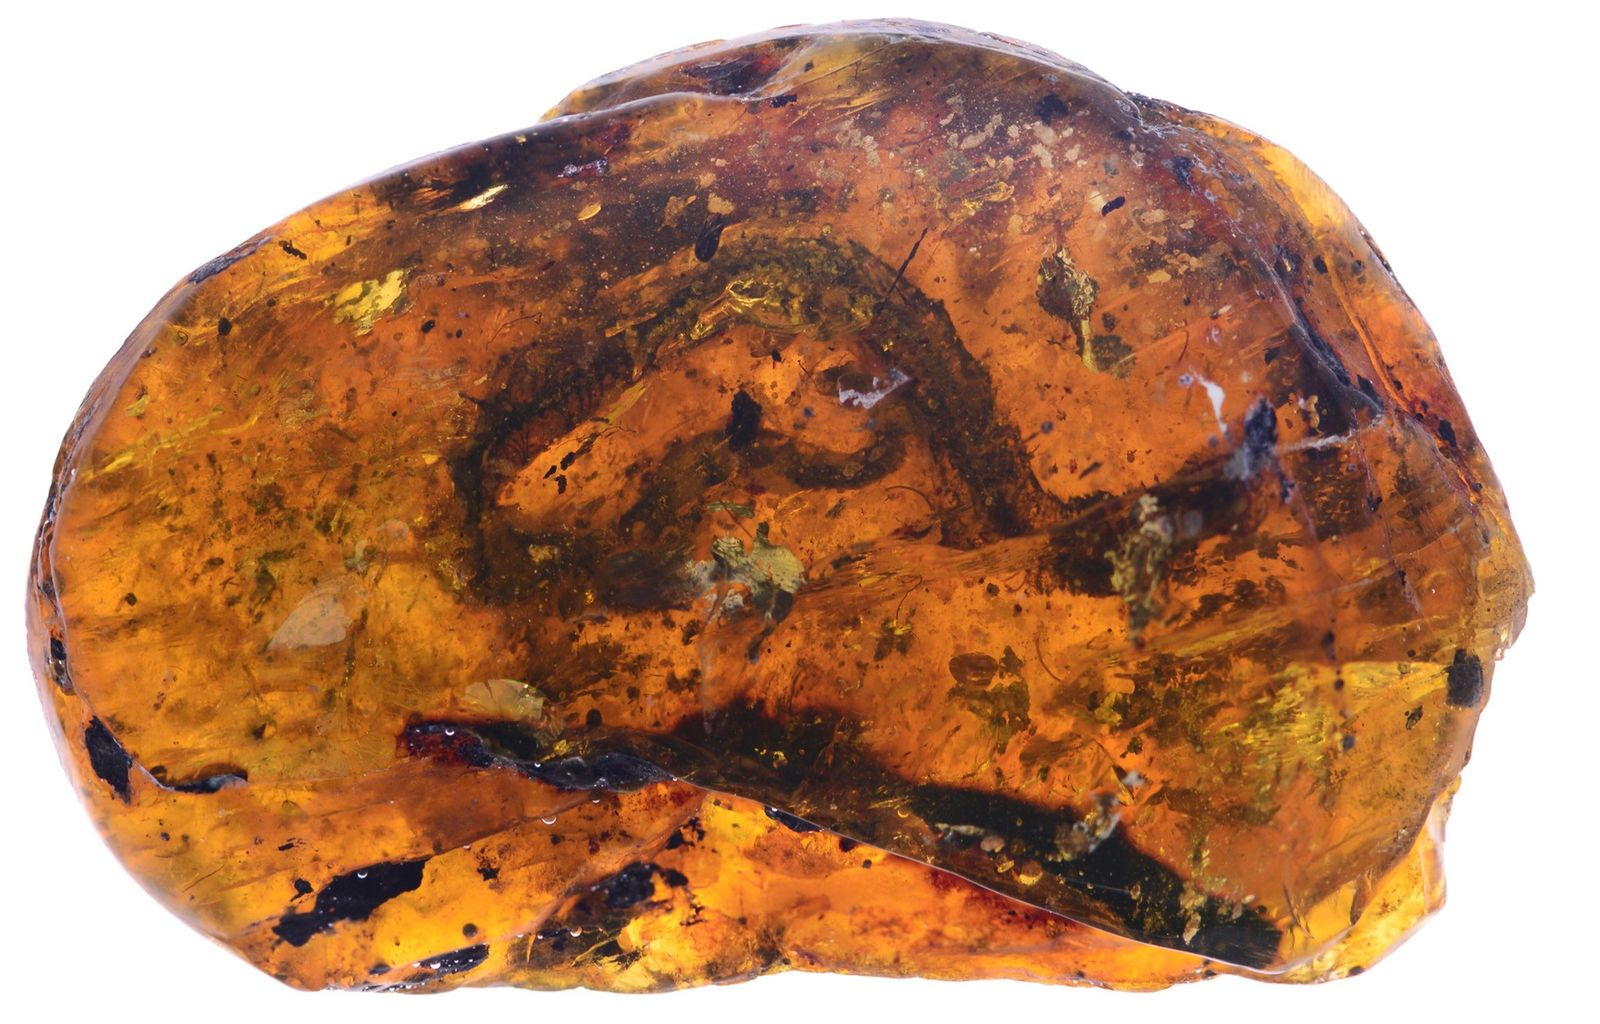 First Baby Snake From Dinosaur Era Found in Amber